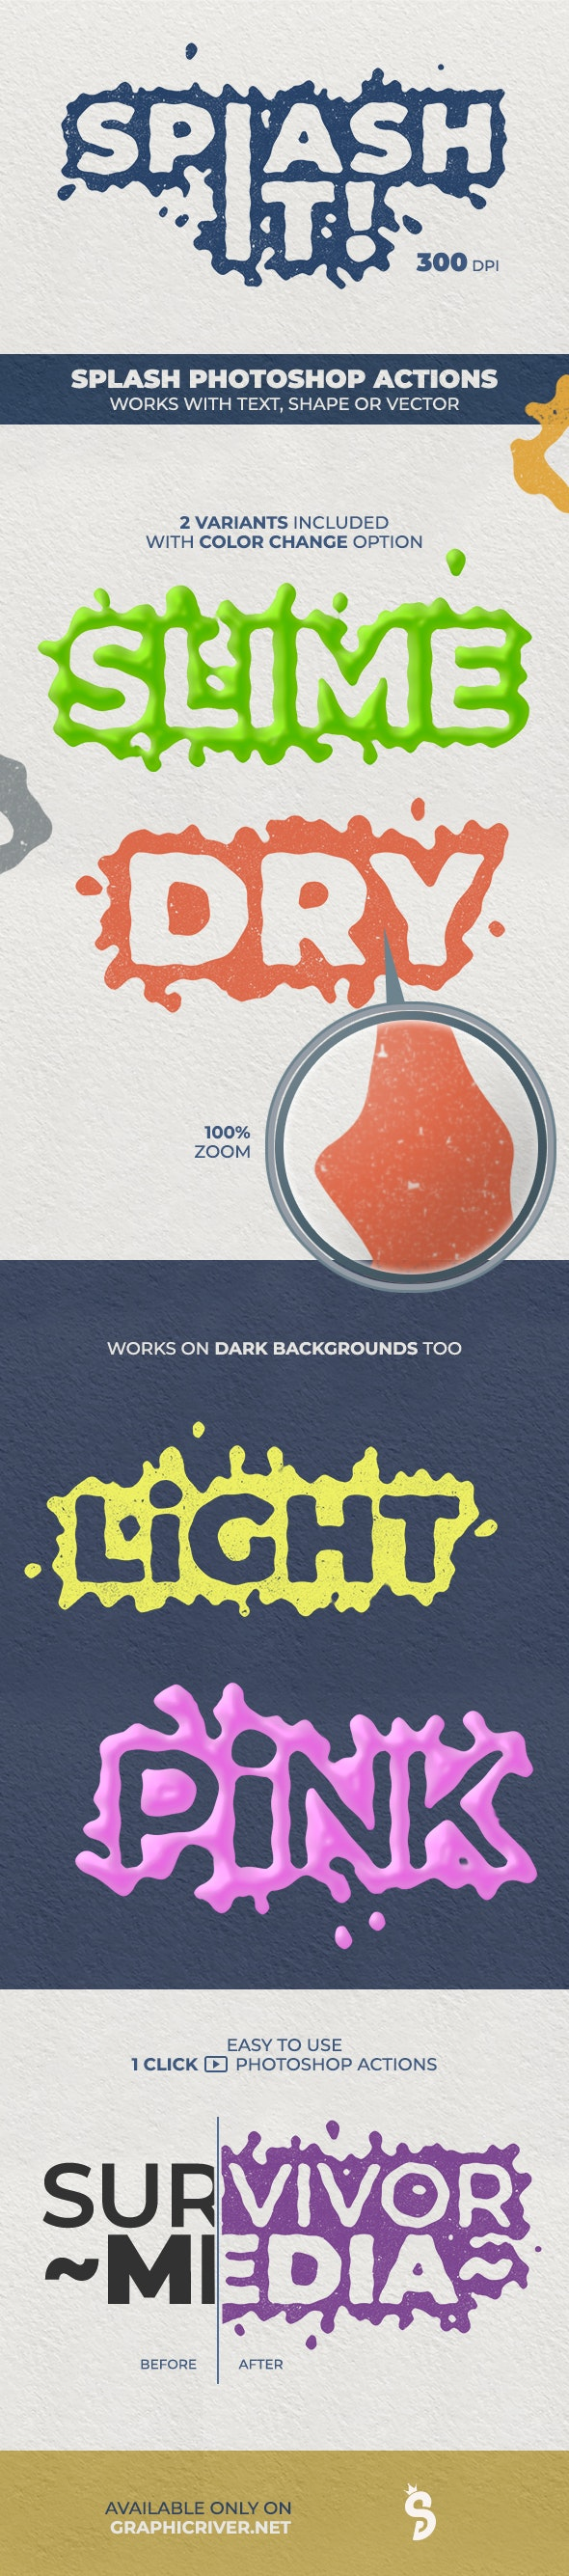 Splash Text Photoshop Actions - 300 DPI - Text Effects Actions